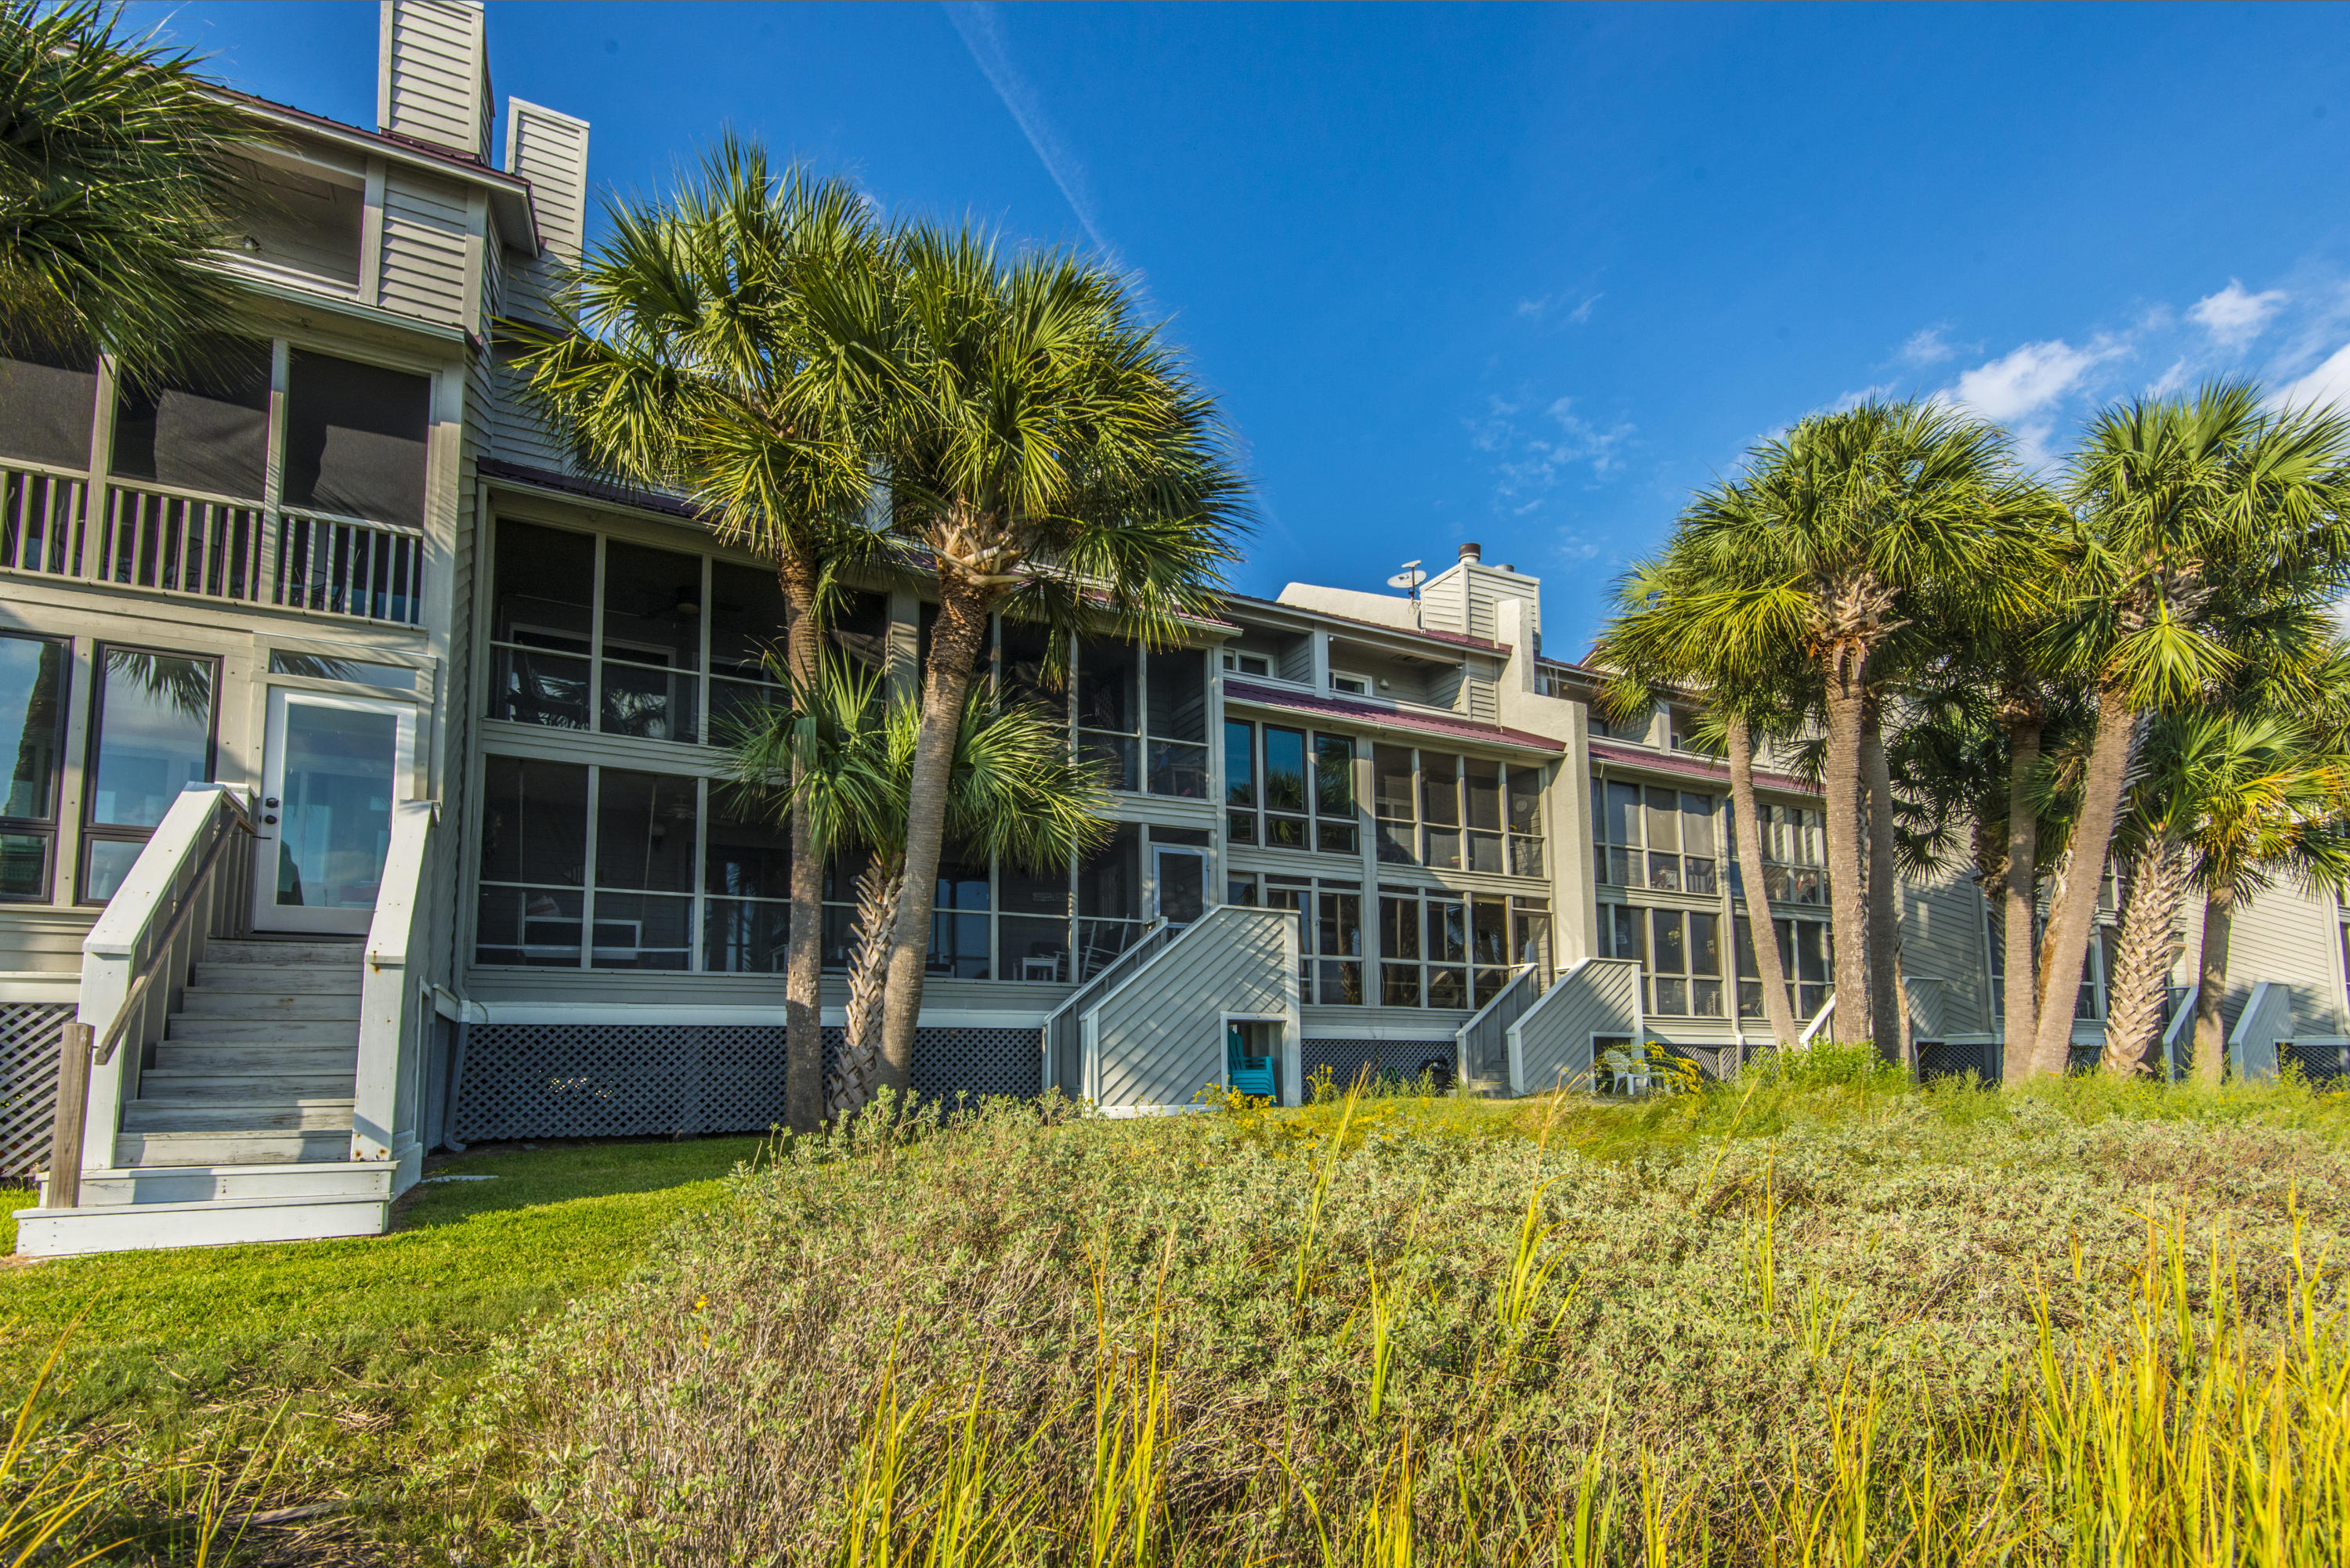 Mariners Cay Homes For Sale - 42 Mariners Cay, Folly Beach, SC - 25